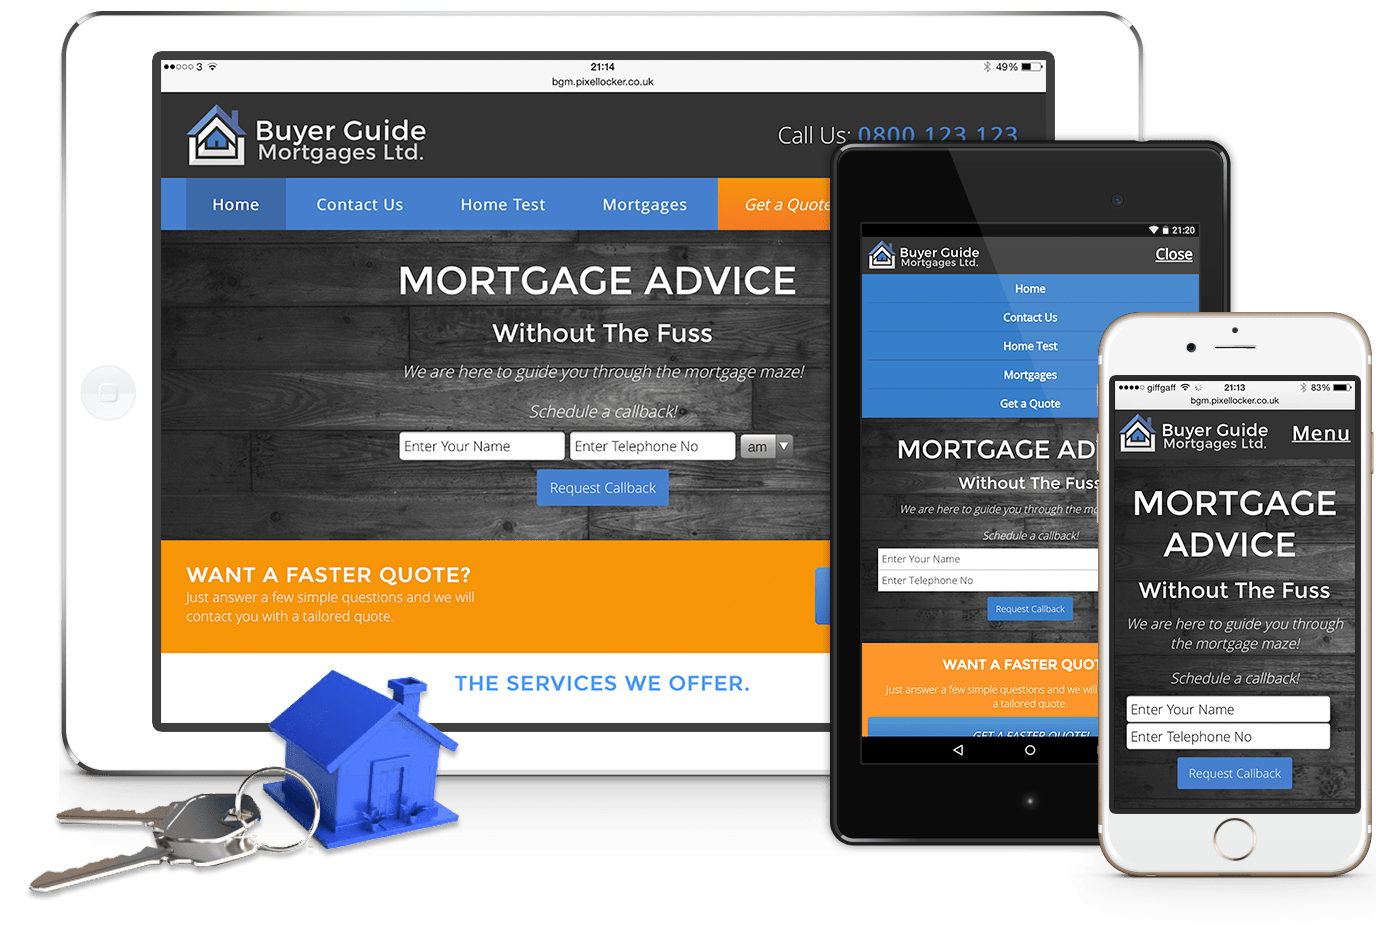 Buyer Guide Mortgages - Designed by Pixel Locker